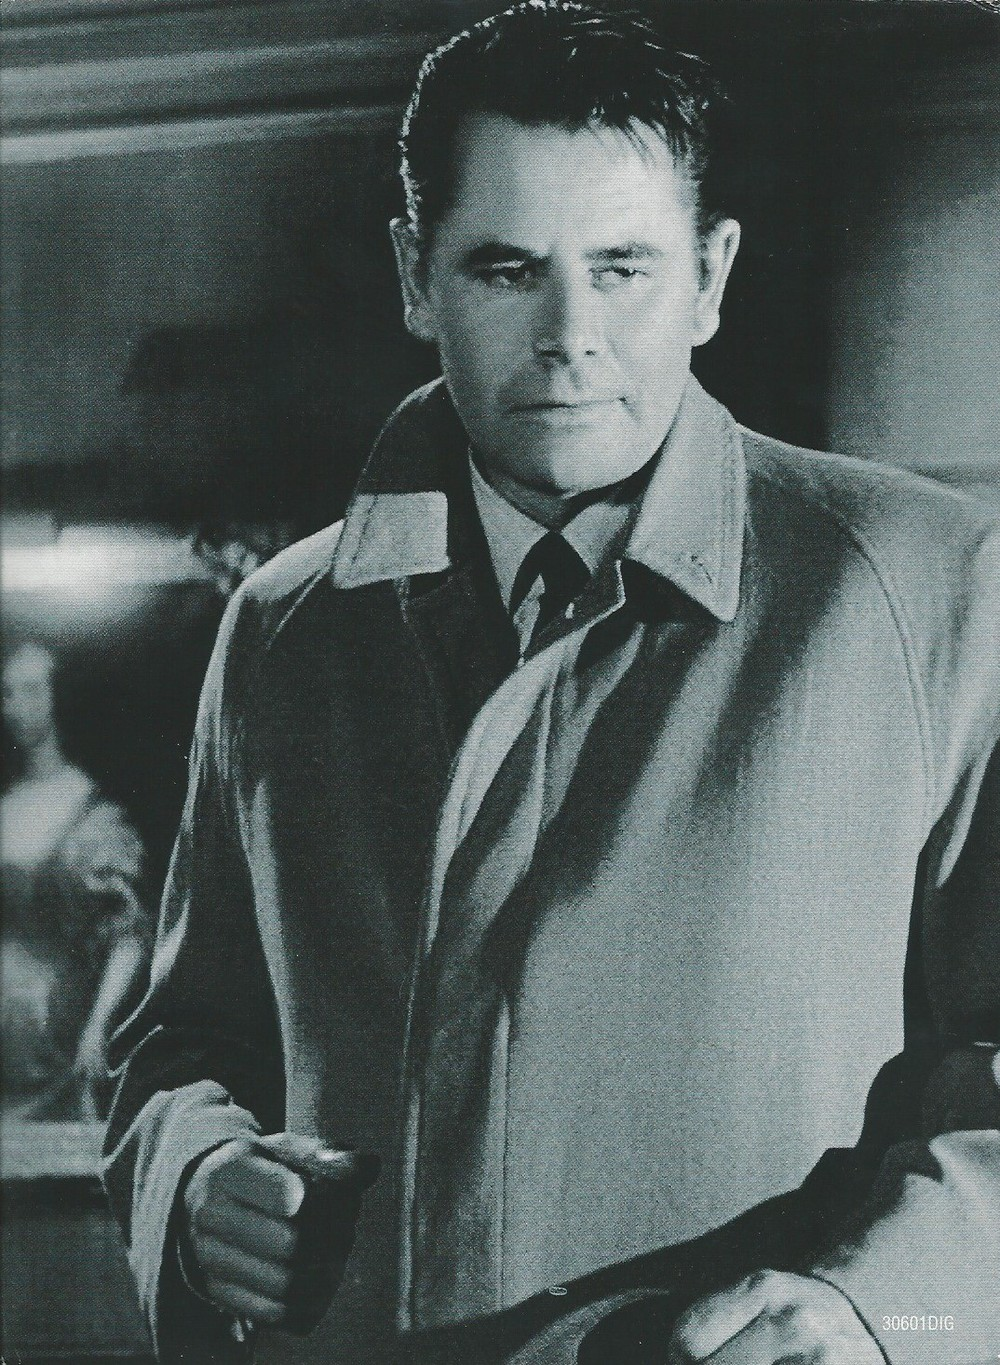 Glenn Ford (1916-2006) in The Big Heat. While Ford was in memorable roles from the 40's, through the 70's, including Superman's adopted Earth father in the memorable 1978 film, the 1950's was his greatest decade. Aside from the two Fritz Lang films, he was captivating as the villain in Delmer Daves' 1957 film 3:10 to Yuma, which could arguably be called a noir western.